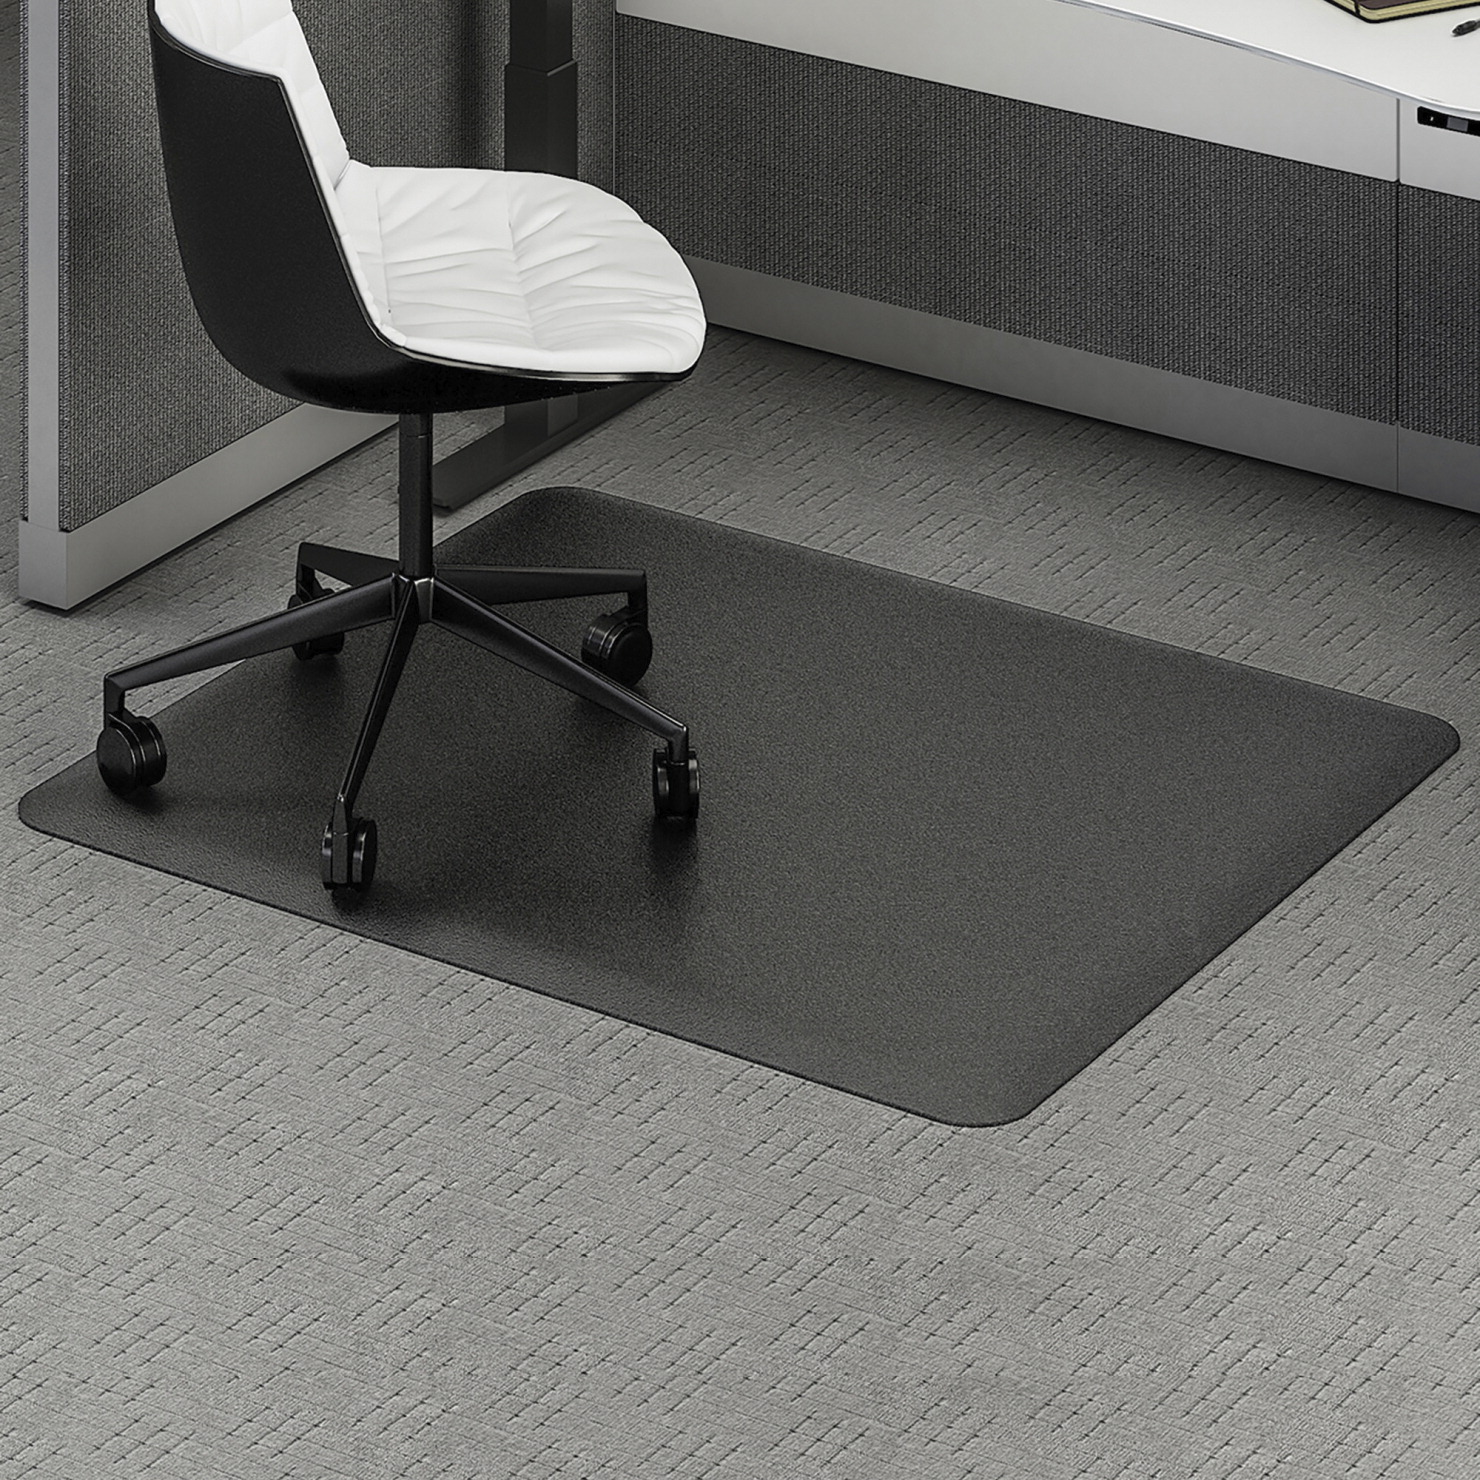 Deflecto Ergonomic Sit Stand Chairmat 45 X 53 Inches Black